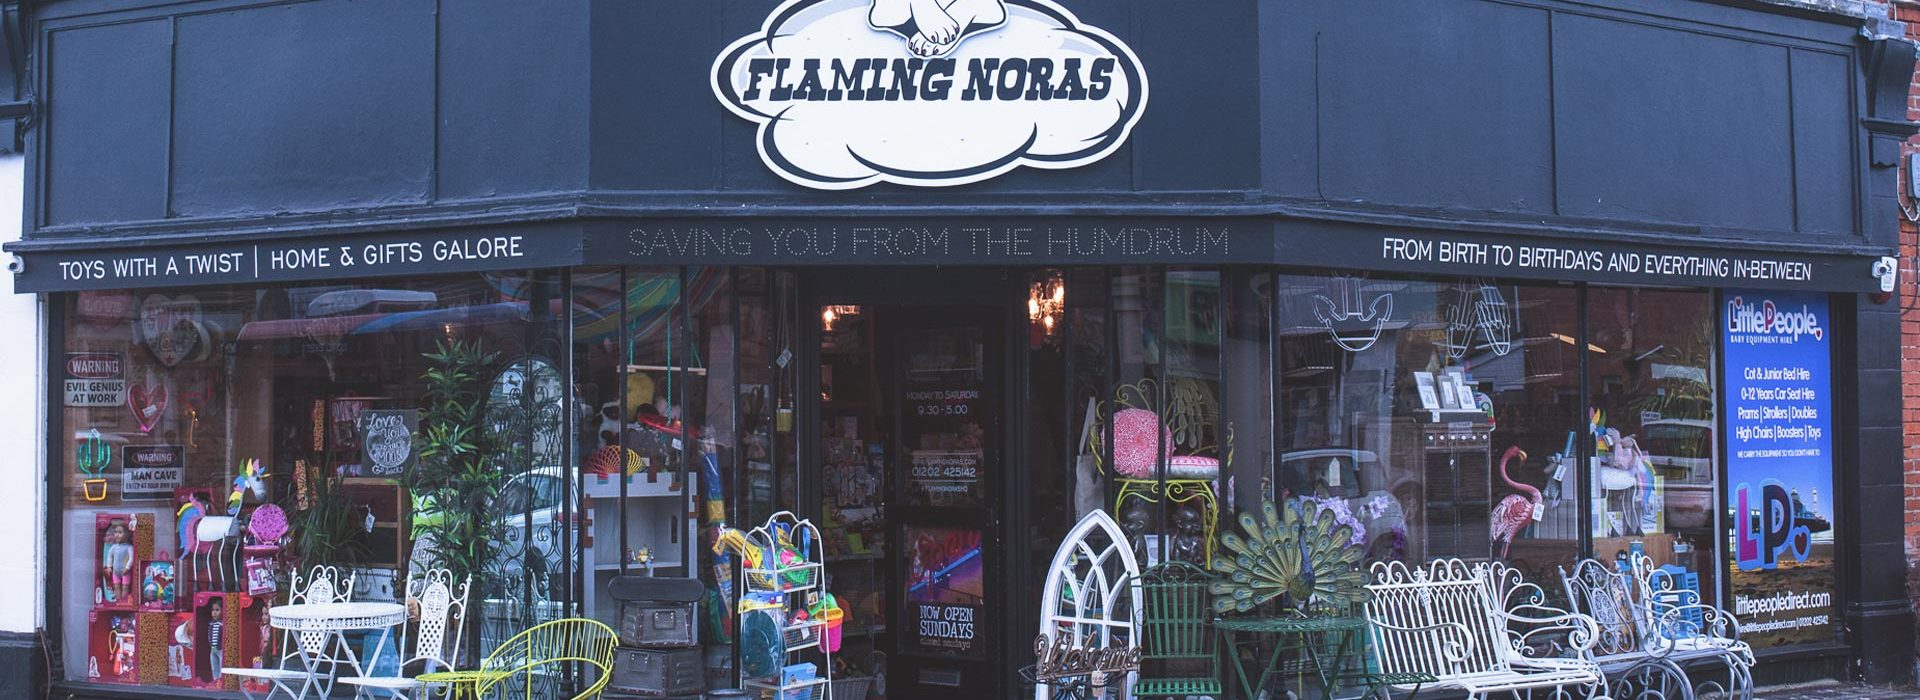 Portfolio - Flaming Noras - Shop Sign